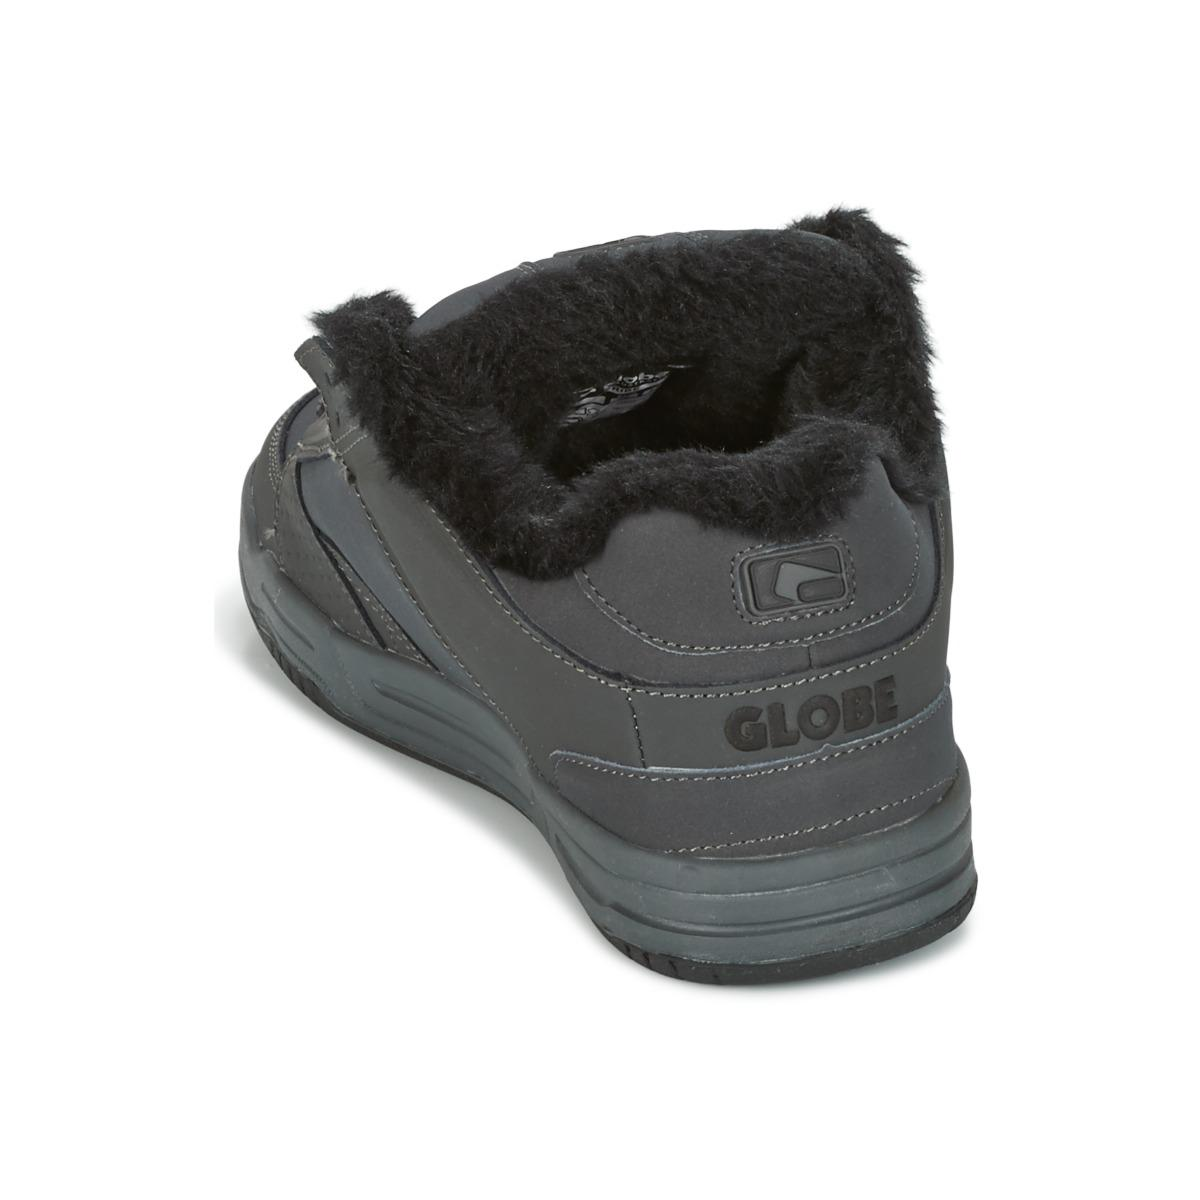 Globe Scribe Fur Shoes (trainers) in Grey (Grey) for Men